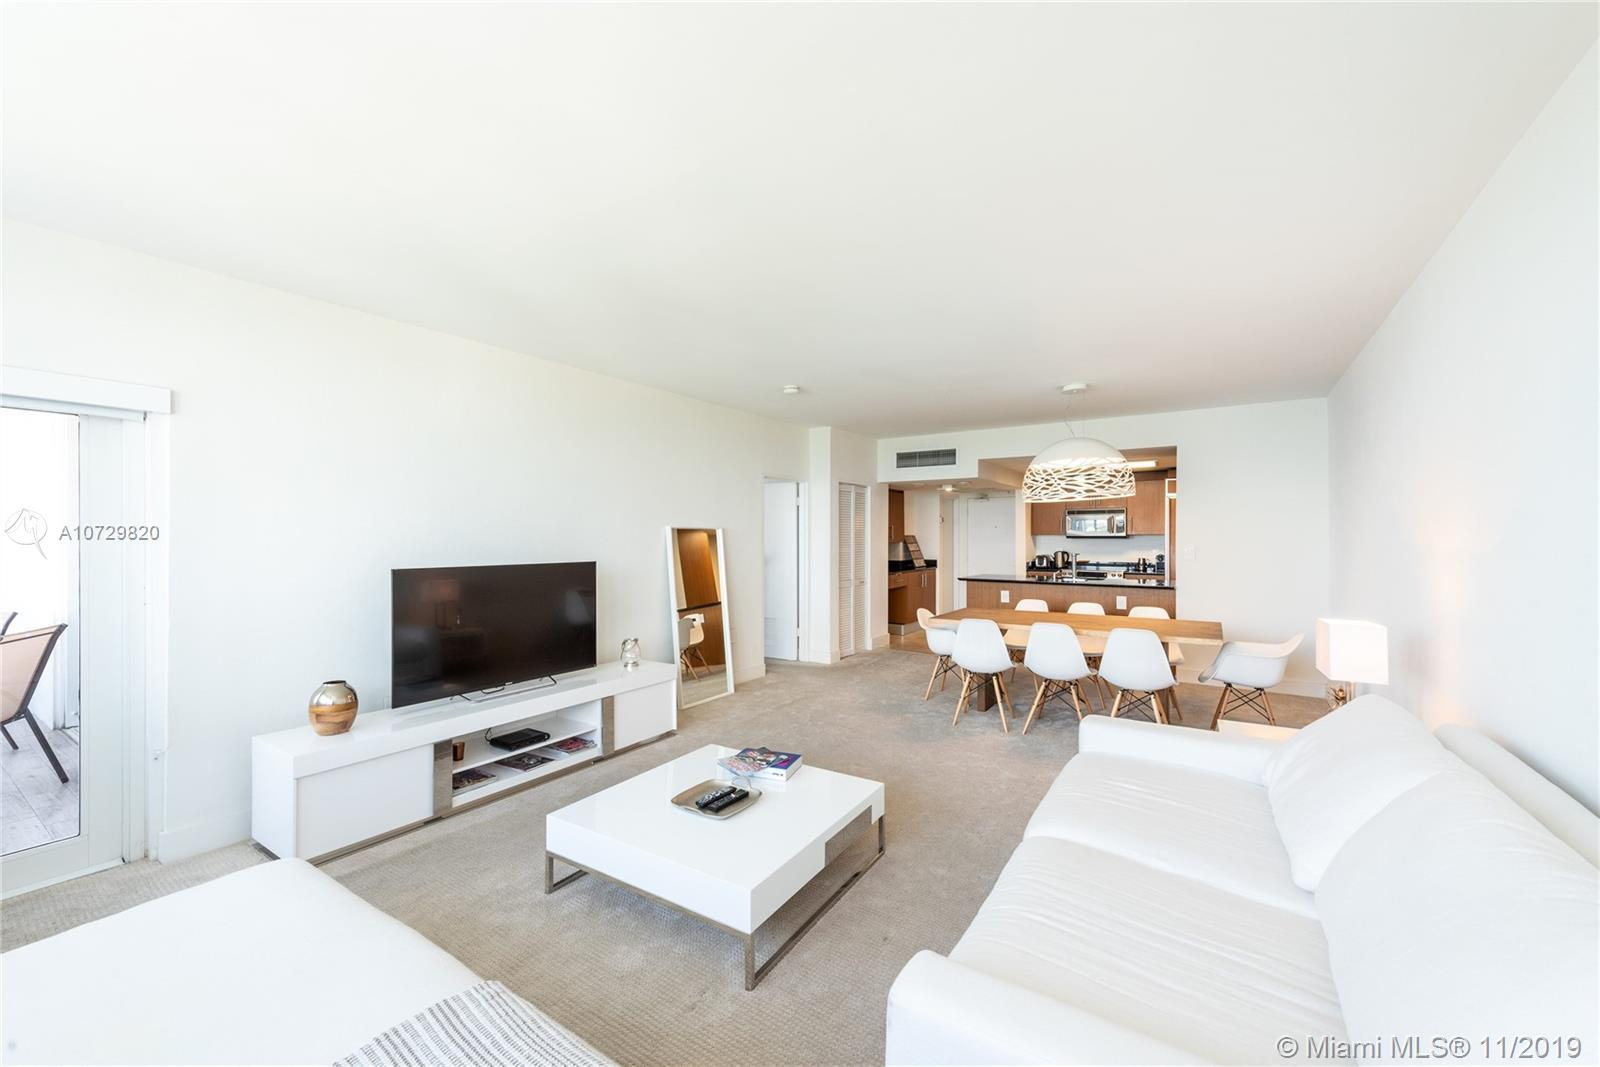 FABULOUS OCEANFRONT, BEACH ACCES BAL HARBOUR CONDOMINIUM. PRICE REDUCED!!! MOTIVATED SELLER!!!! Full